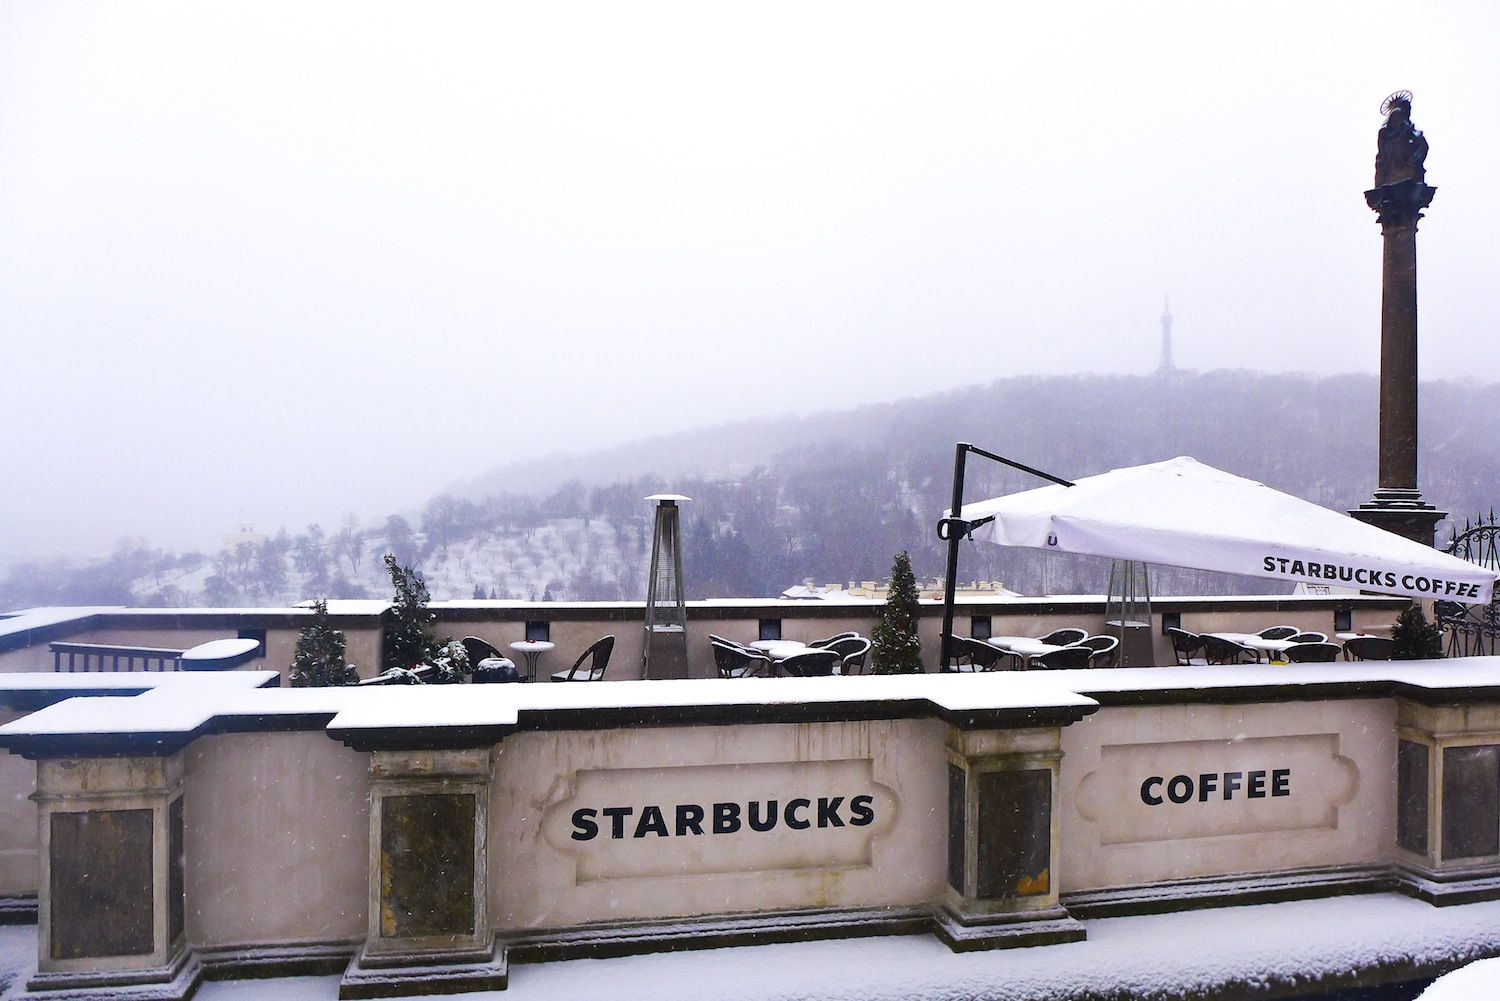 How I am using a lot of my mind on imagining how lovely would it be to sit here for a cup of coffee while enjoying the sight of the Lesser Town from afar. Definitely a good thing to do during the summer!